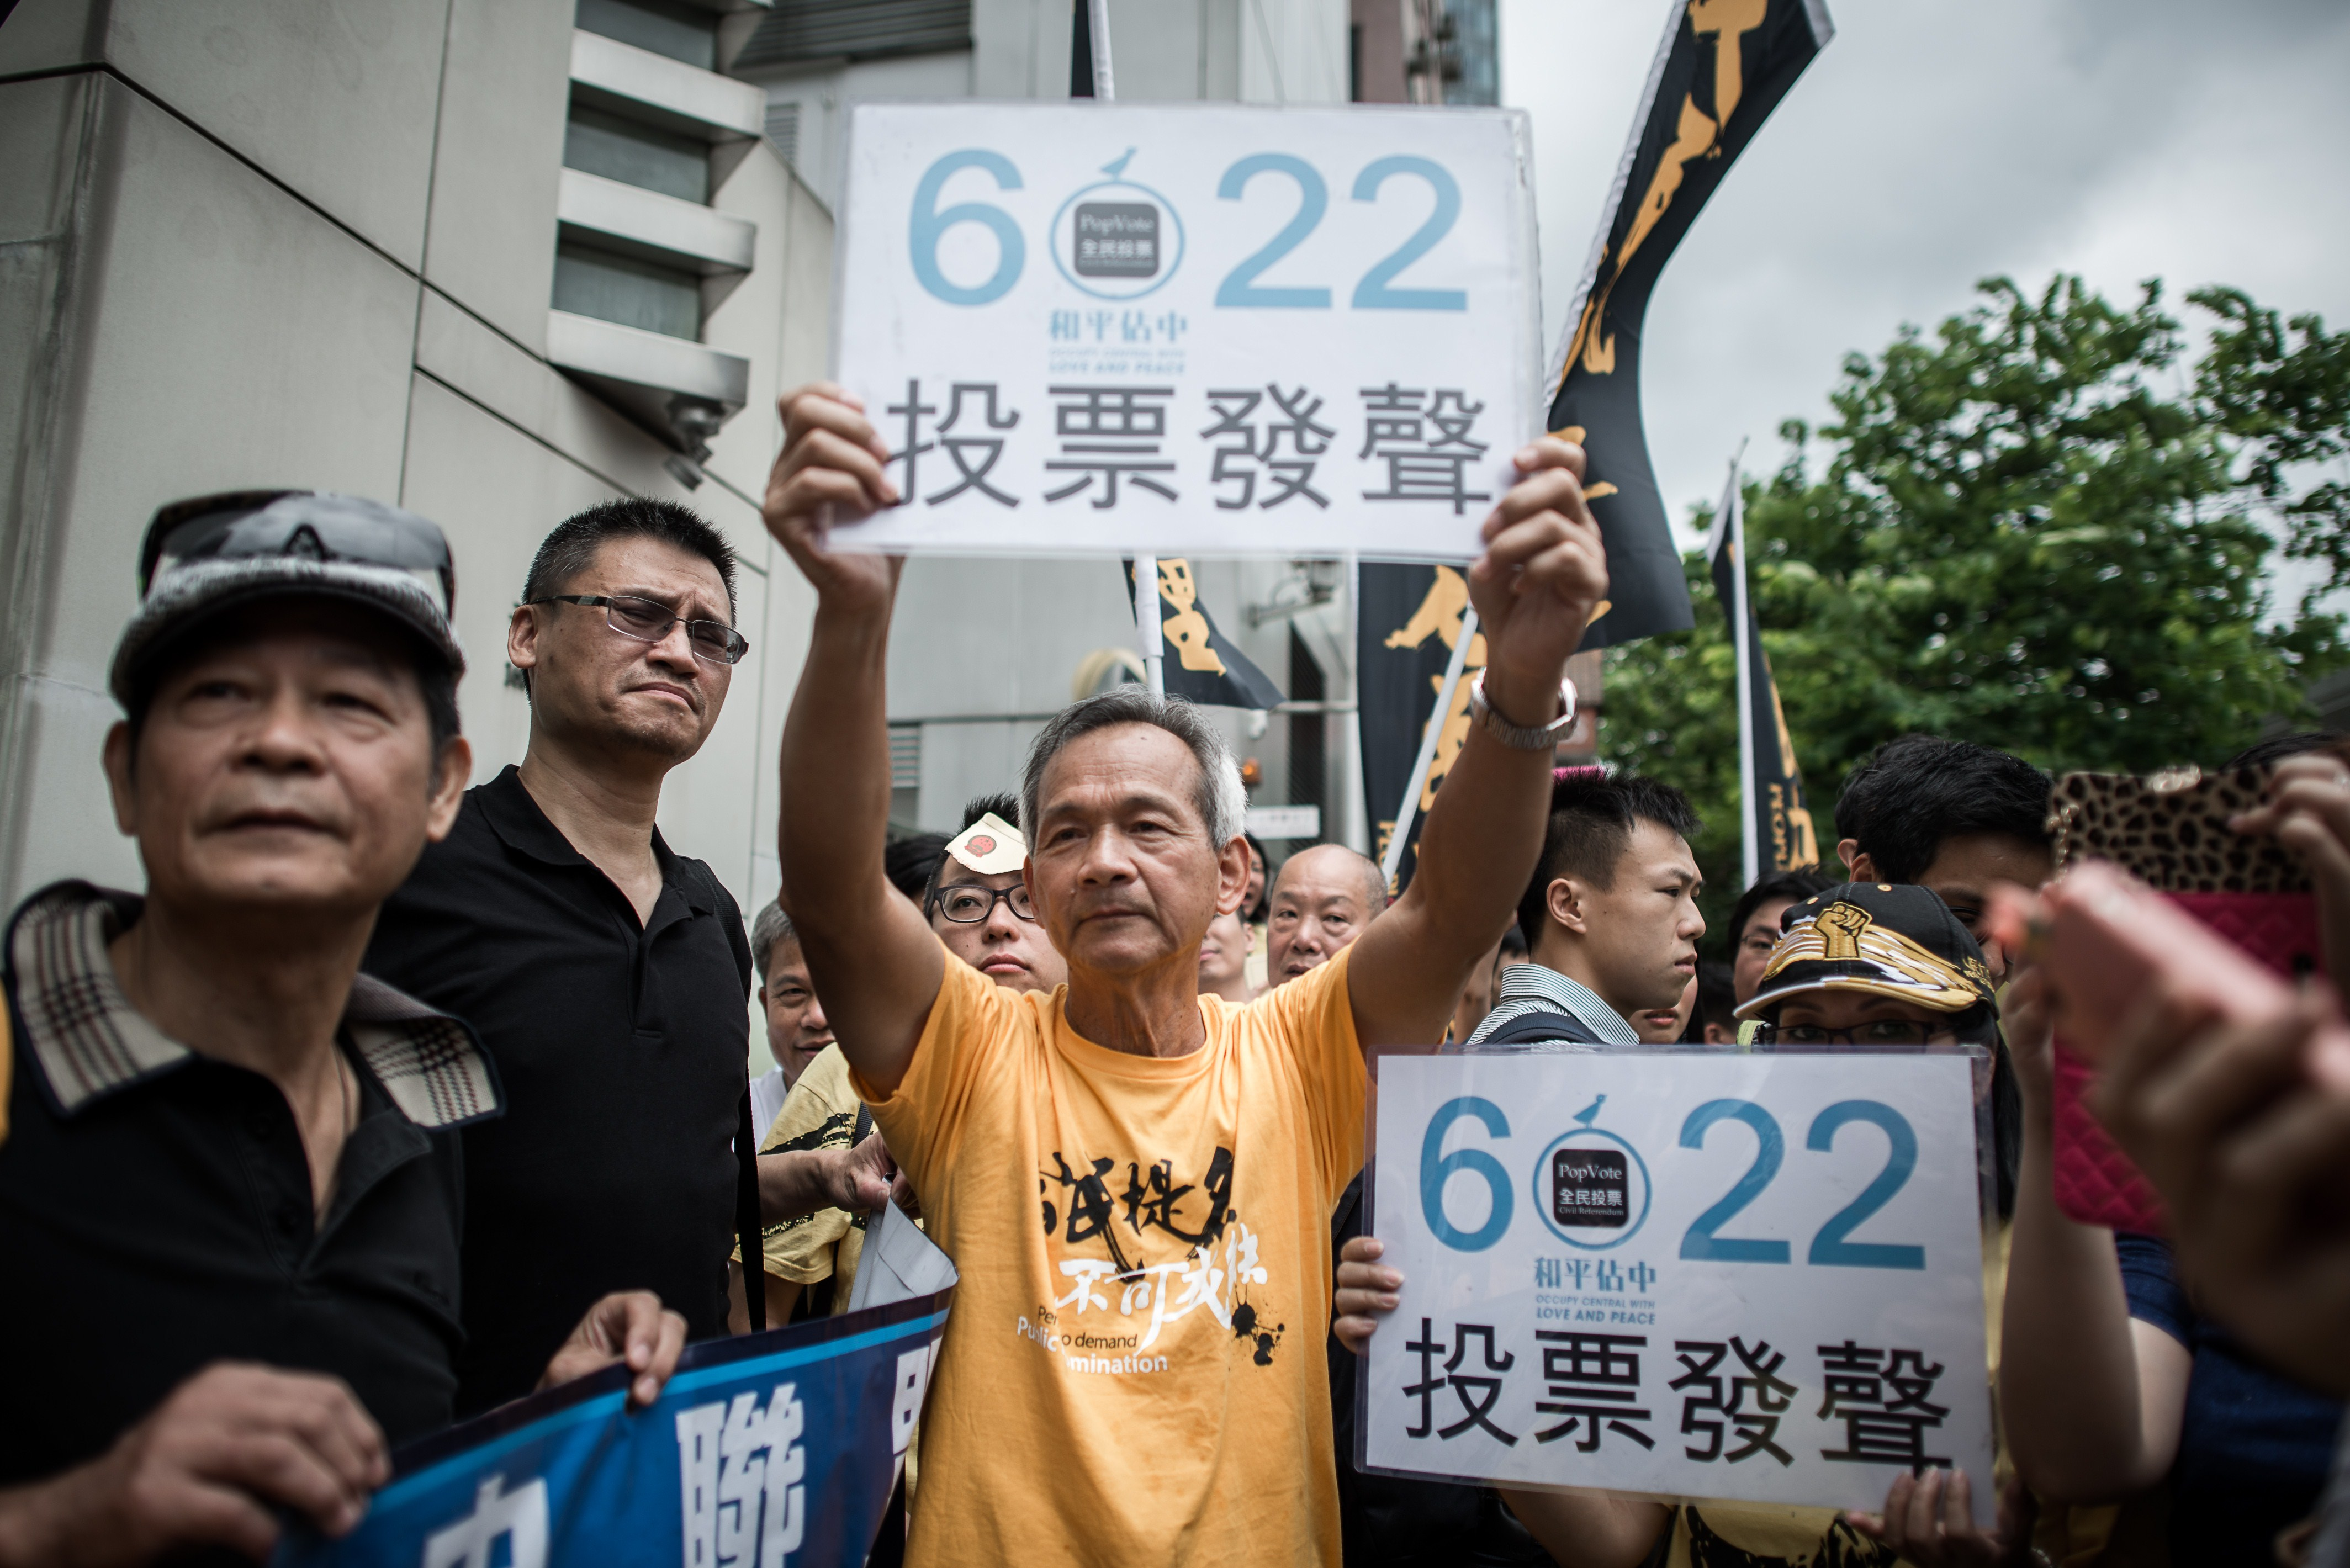 Demonstrators supporting the Occupy Central movement display placards asking Hong Kong residents to cast ballots for the June 22 referendum on three proposals outlining rules for the Chief Executive election, during a protest outside Beijing's representative office in Hong Kong on June 11, 2014